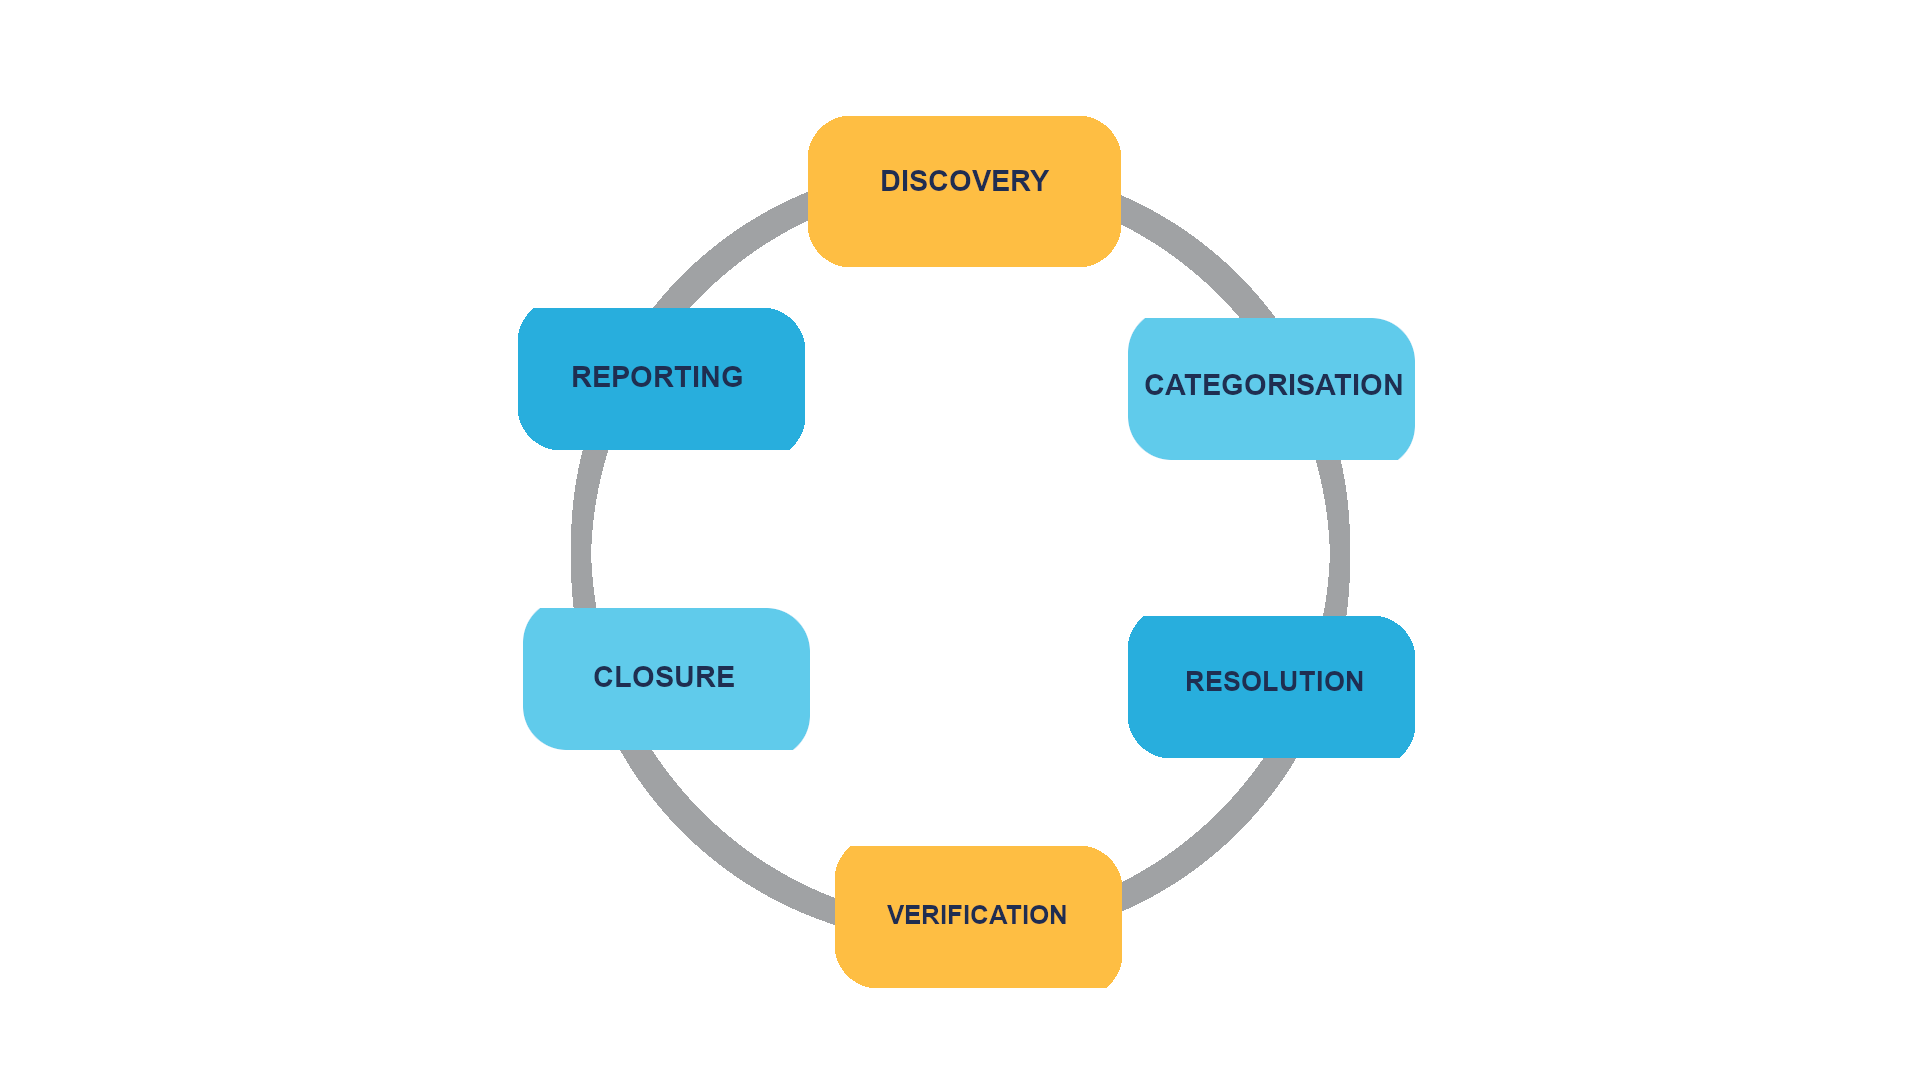 The cycle presents defect management process